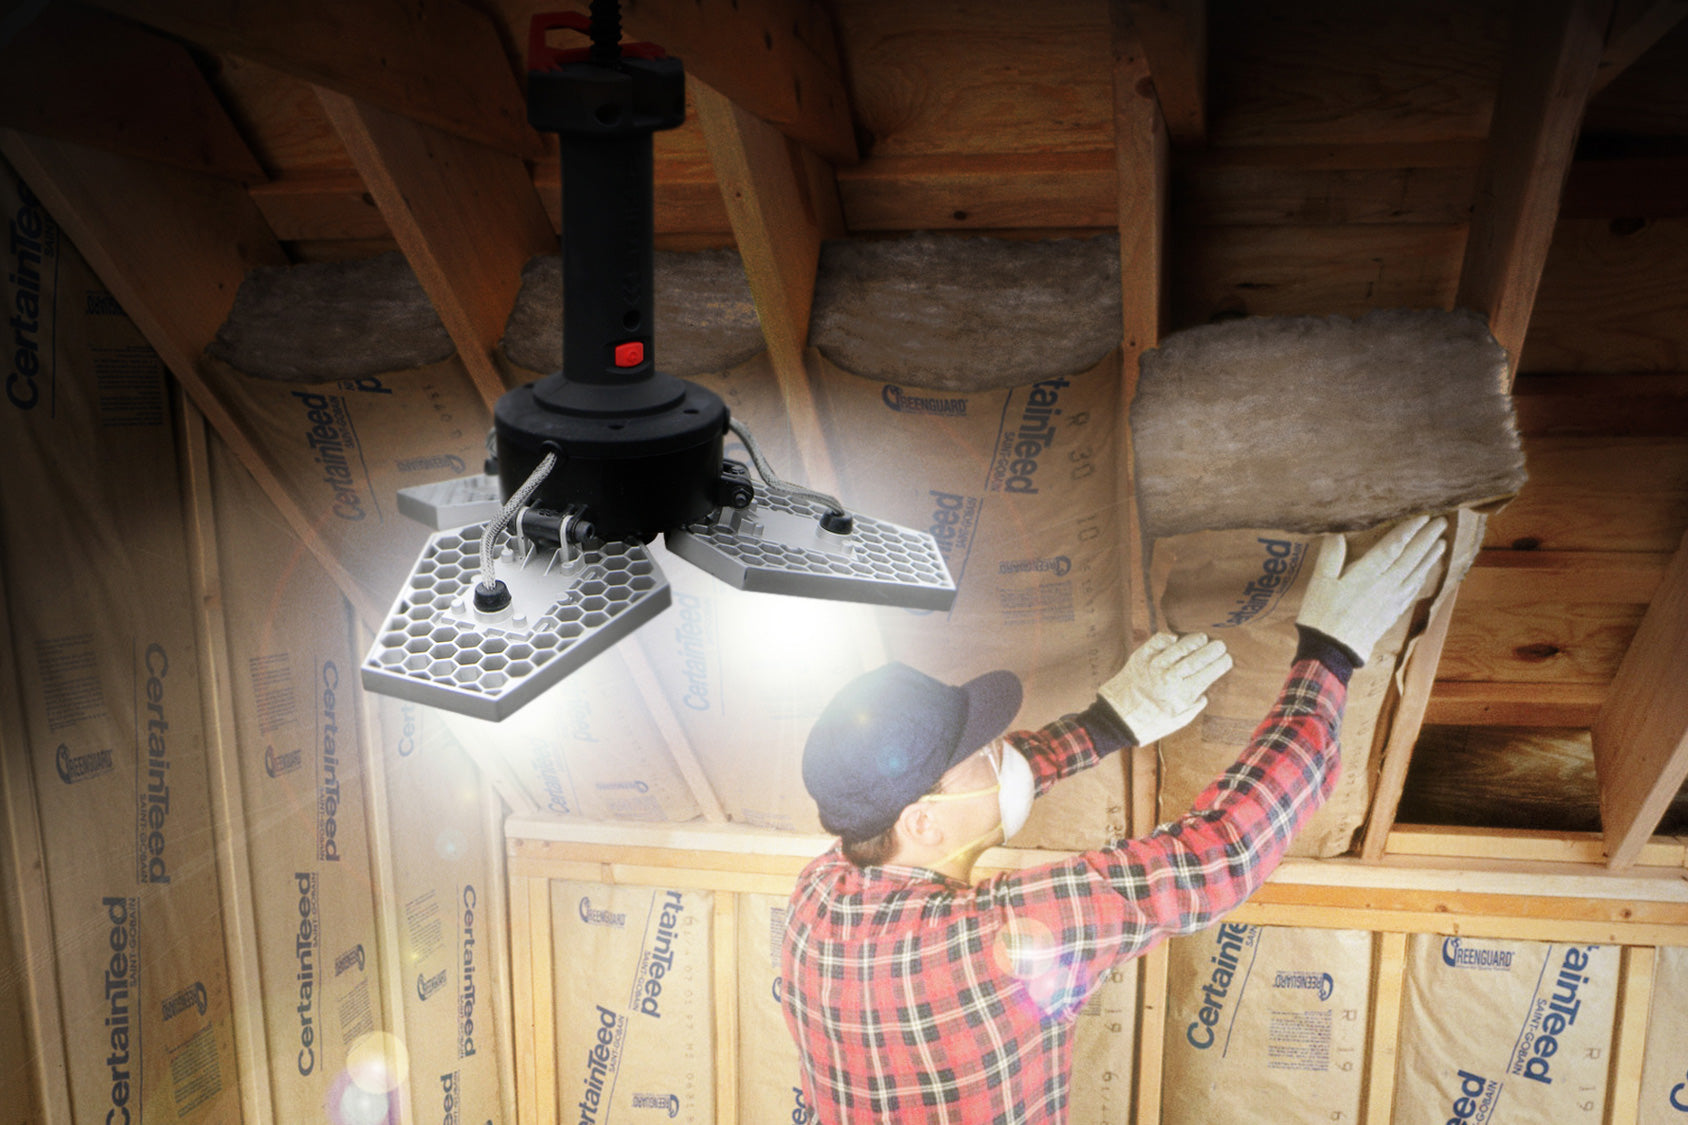 Light Up room during DIY Insulation with STKR Concepts TRiLIGHT ShopLight - Striker